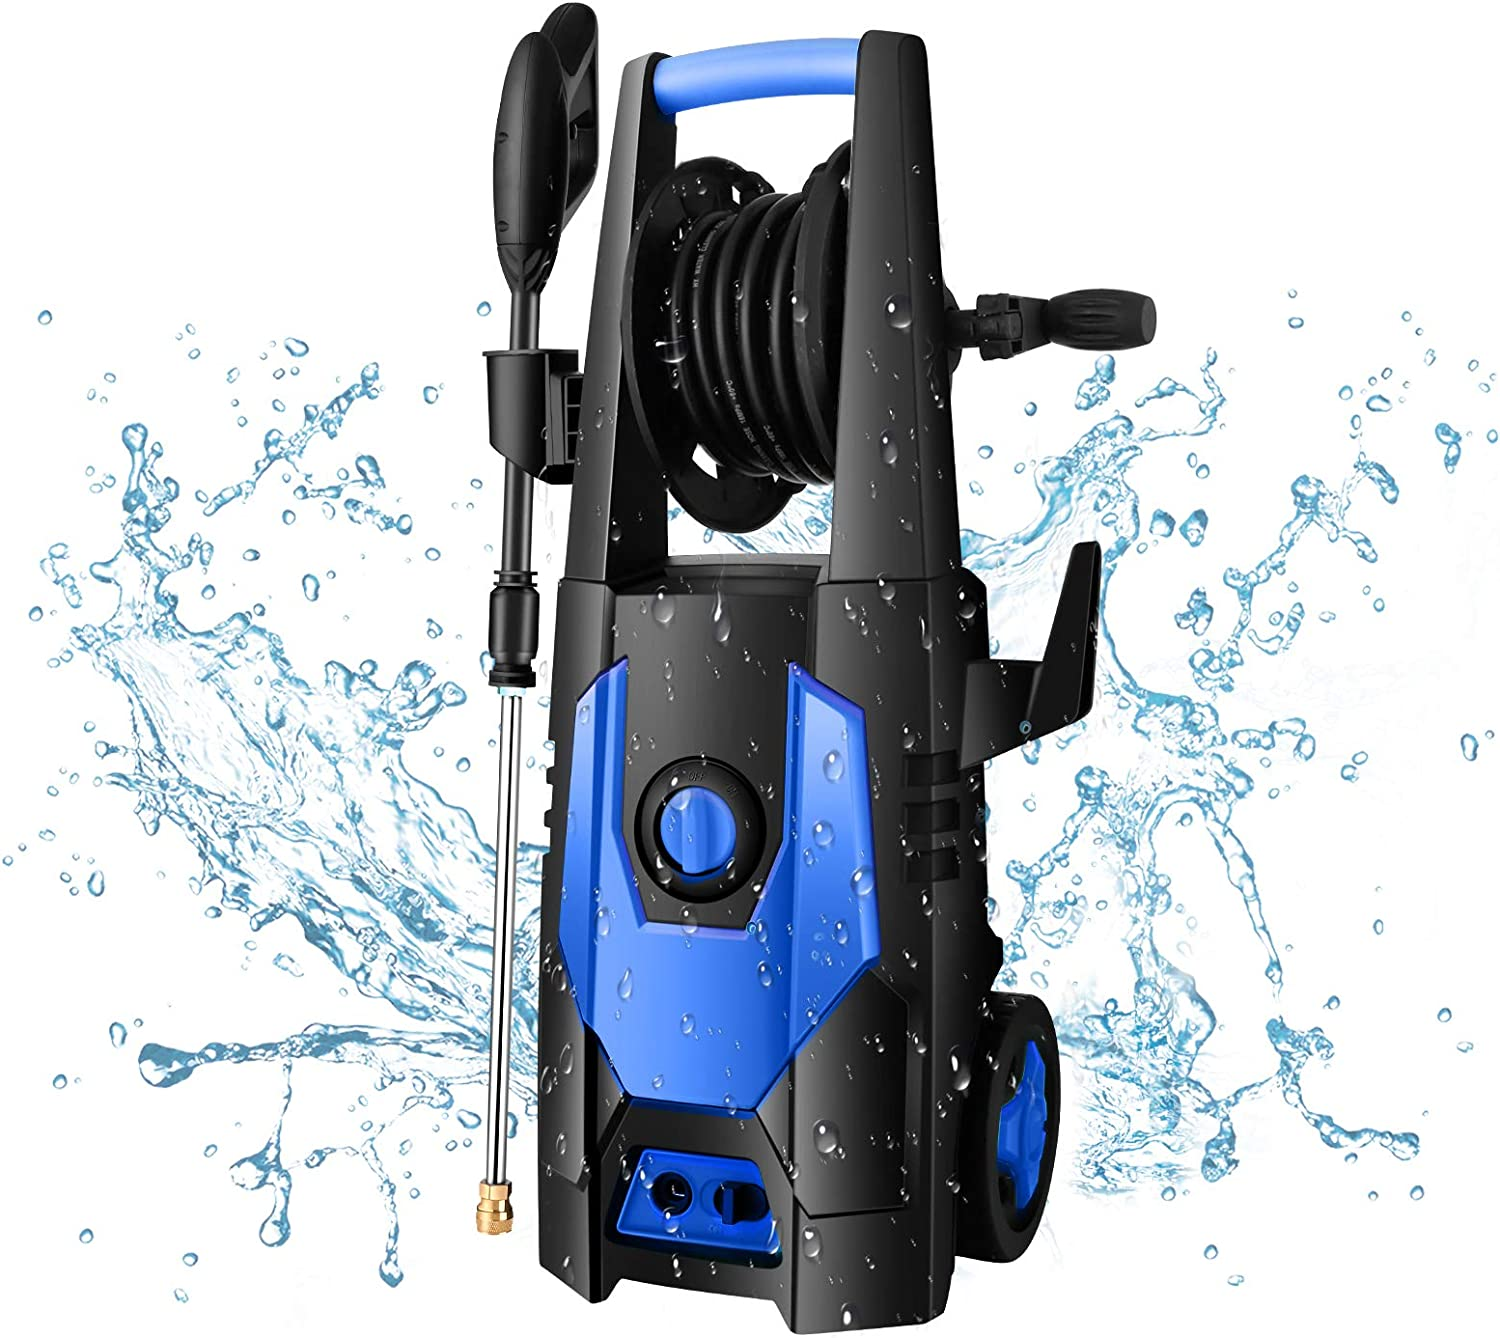 mrliance 1800W 2.0GPM Electric Cleaner Max 45% OFF PSI 3500 OFFicial shop Pre High Machine